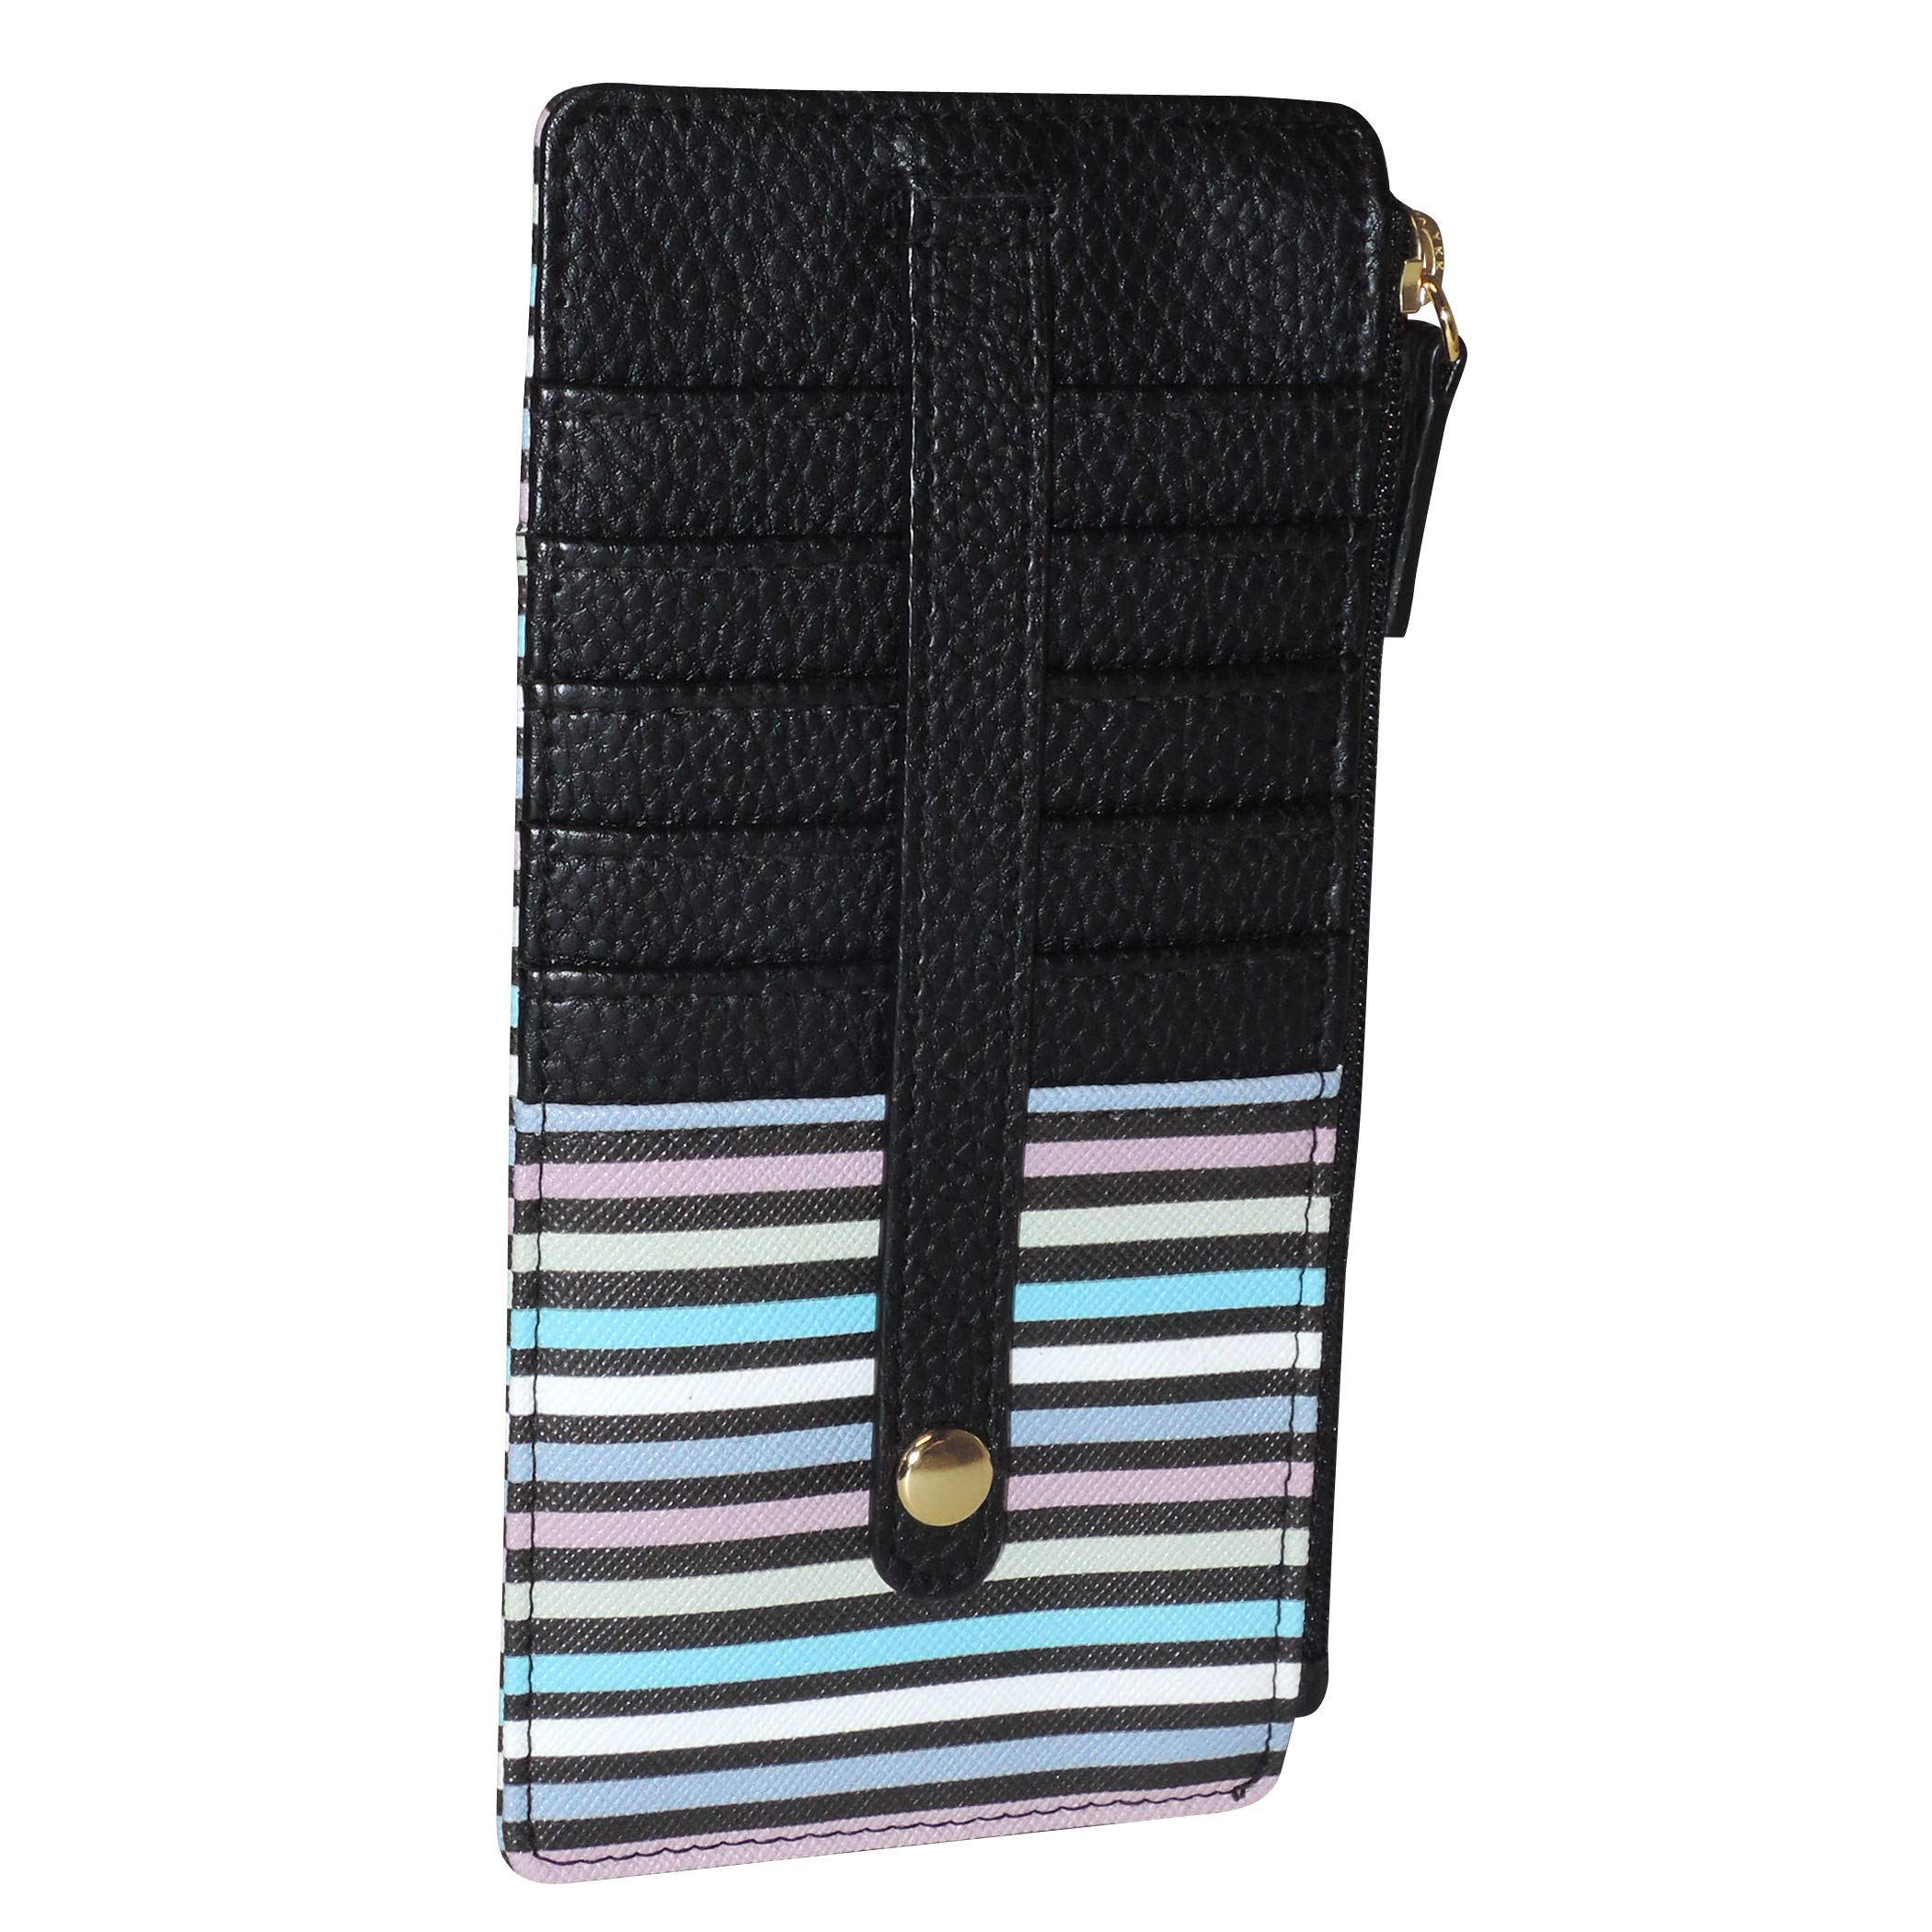 Buxton Womens Leather 3 in 1 Thin Credit Card Case Wallet/Change Purse/Id Holder (Stripe)